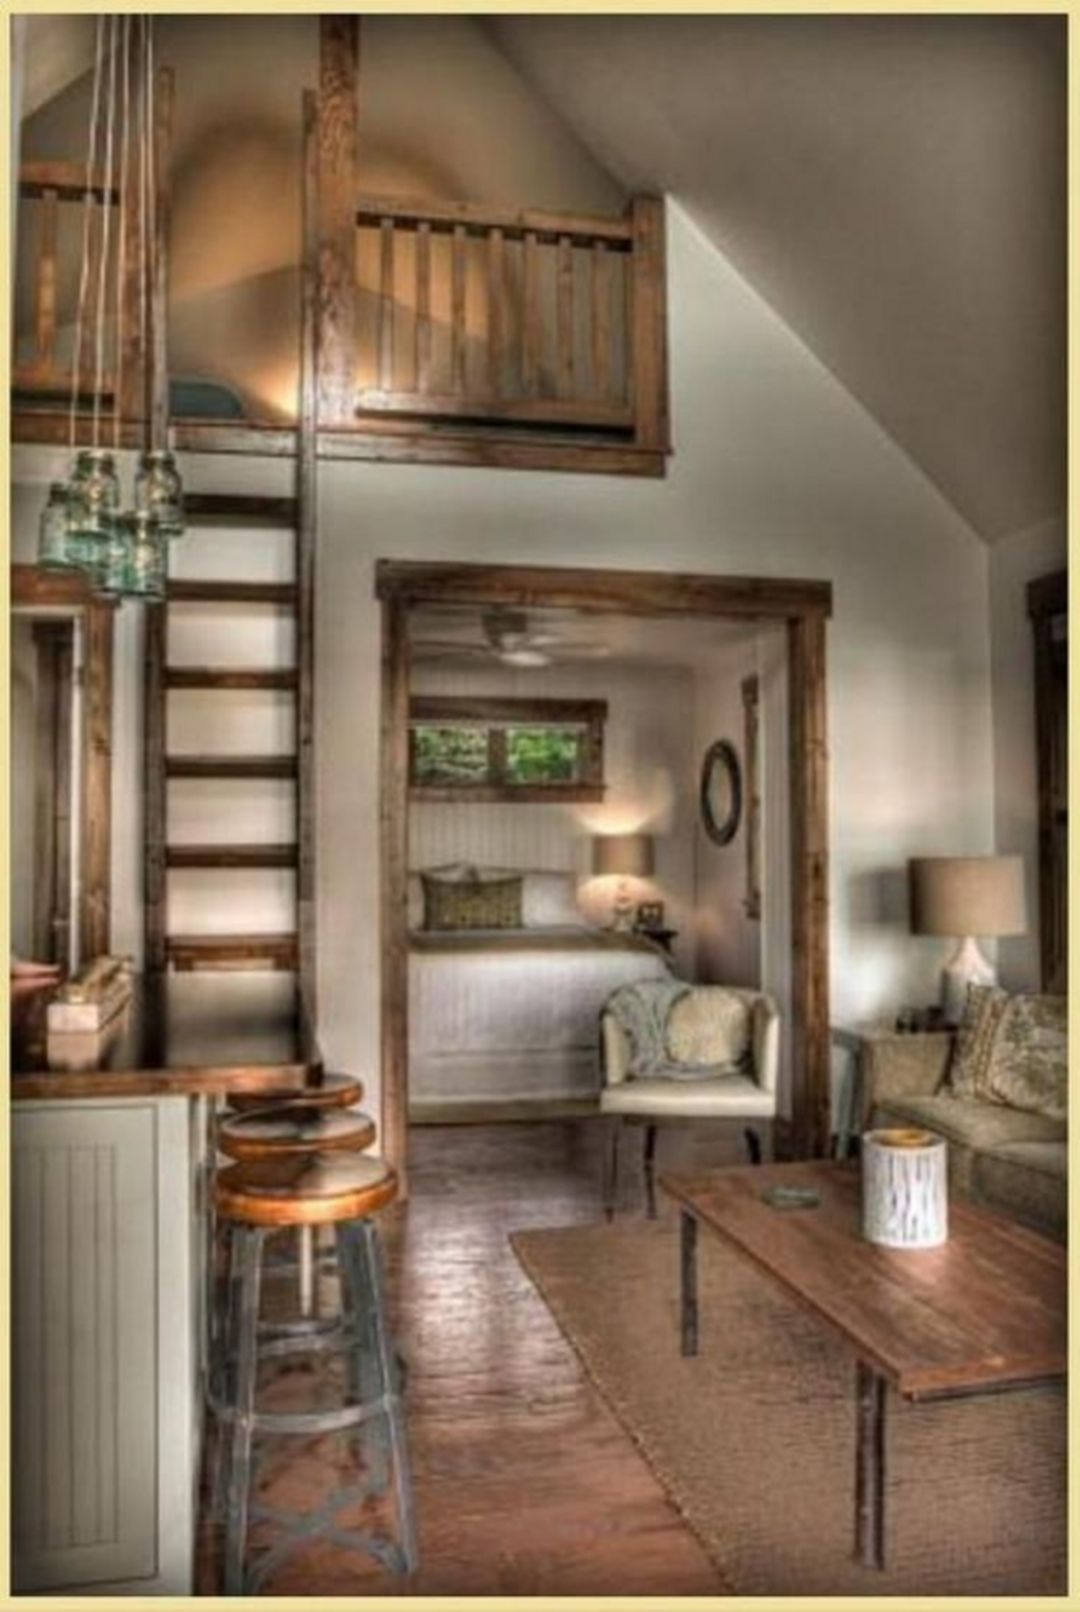 25 Interesting Small Home Decor Ideas You Must Have #tinyhome